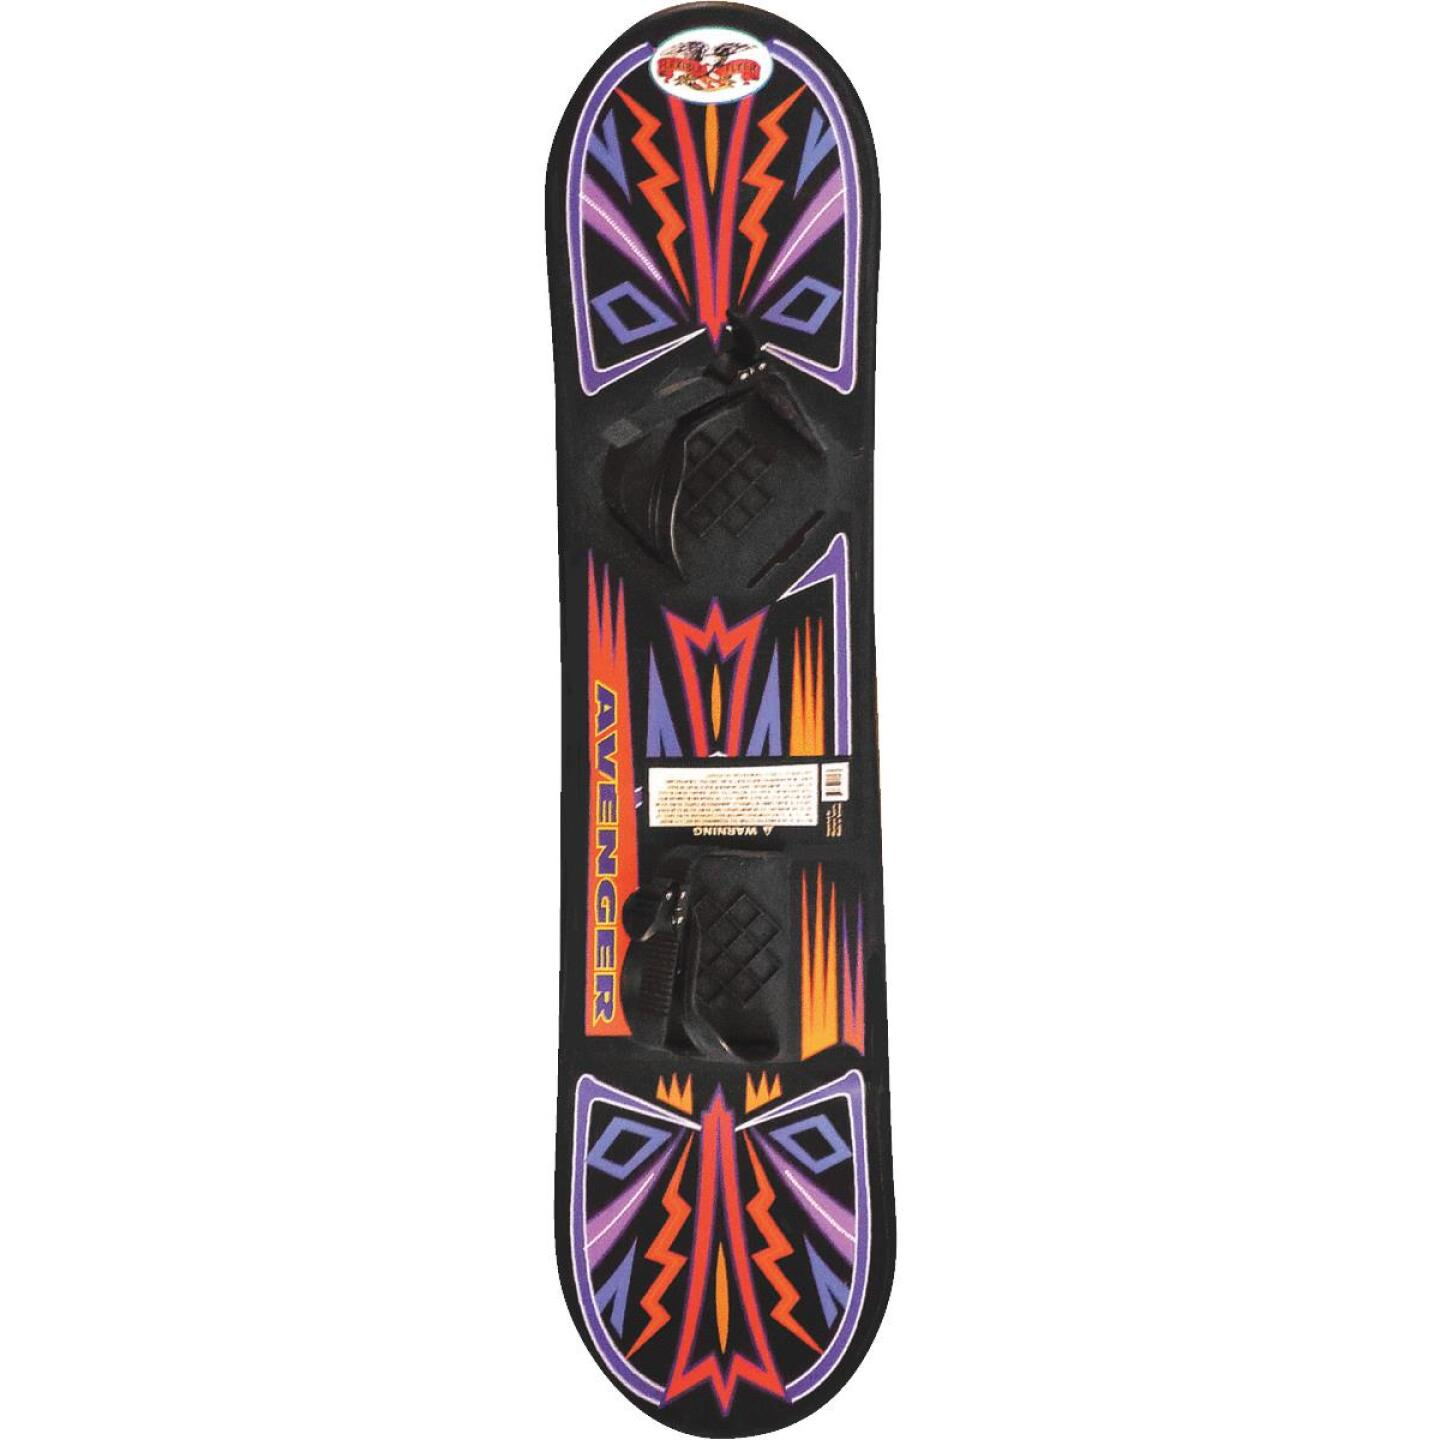 Flexible Flyer Avenger 37 In. Plastic Snowboard Image 1